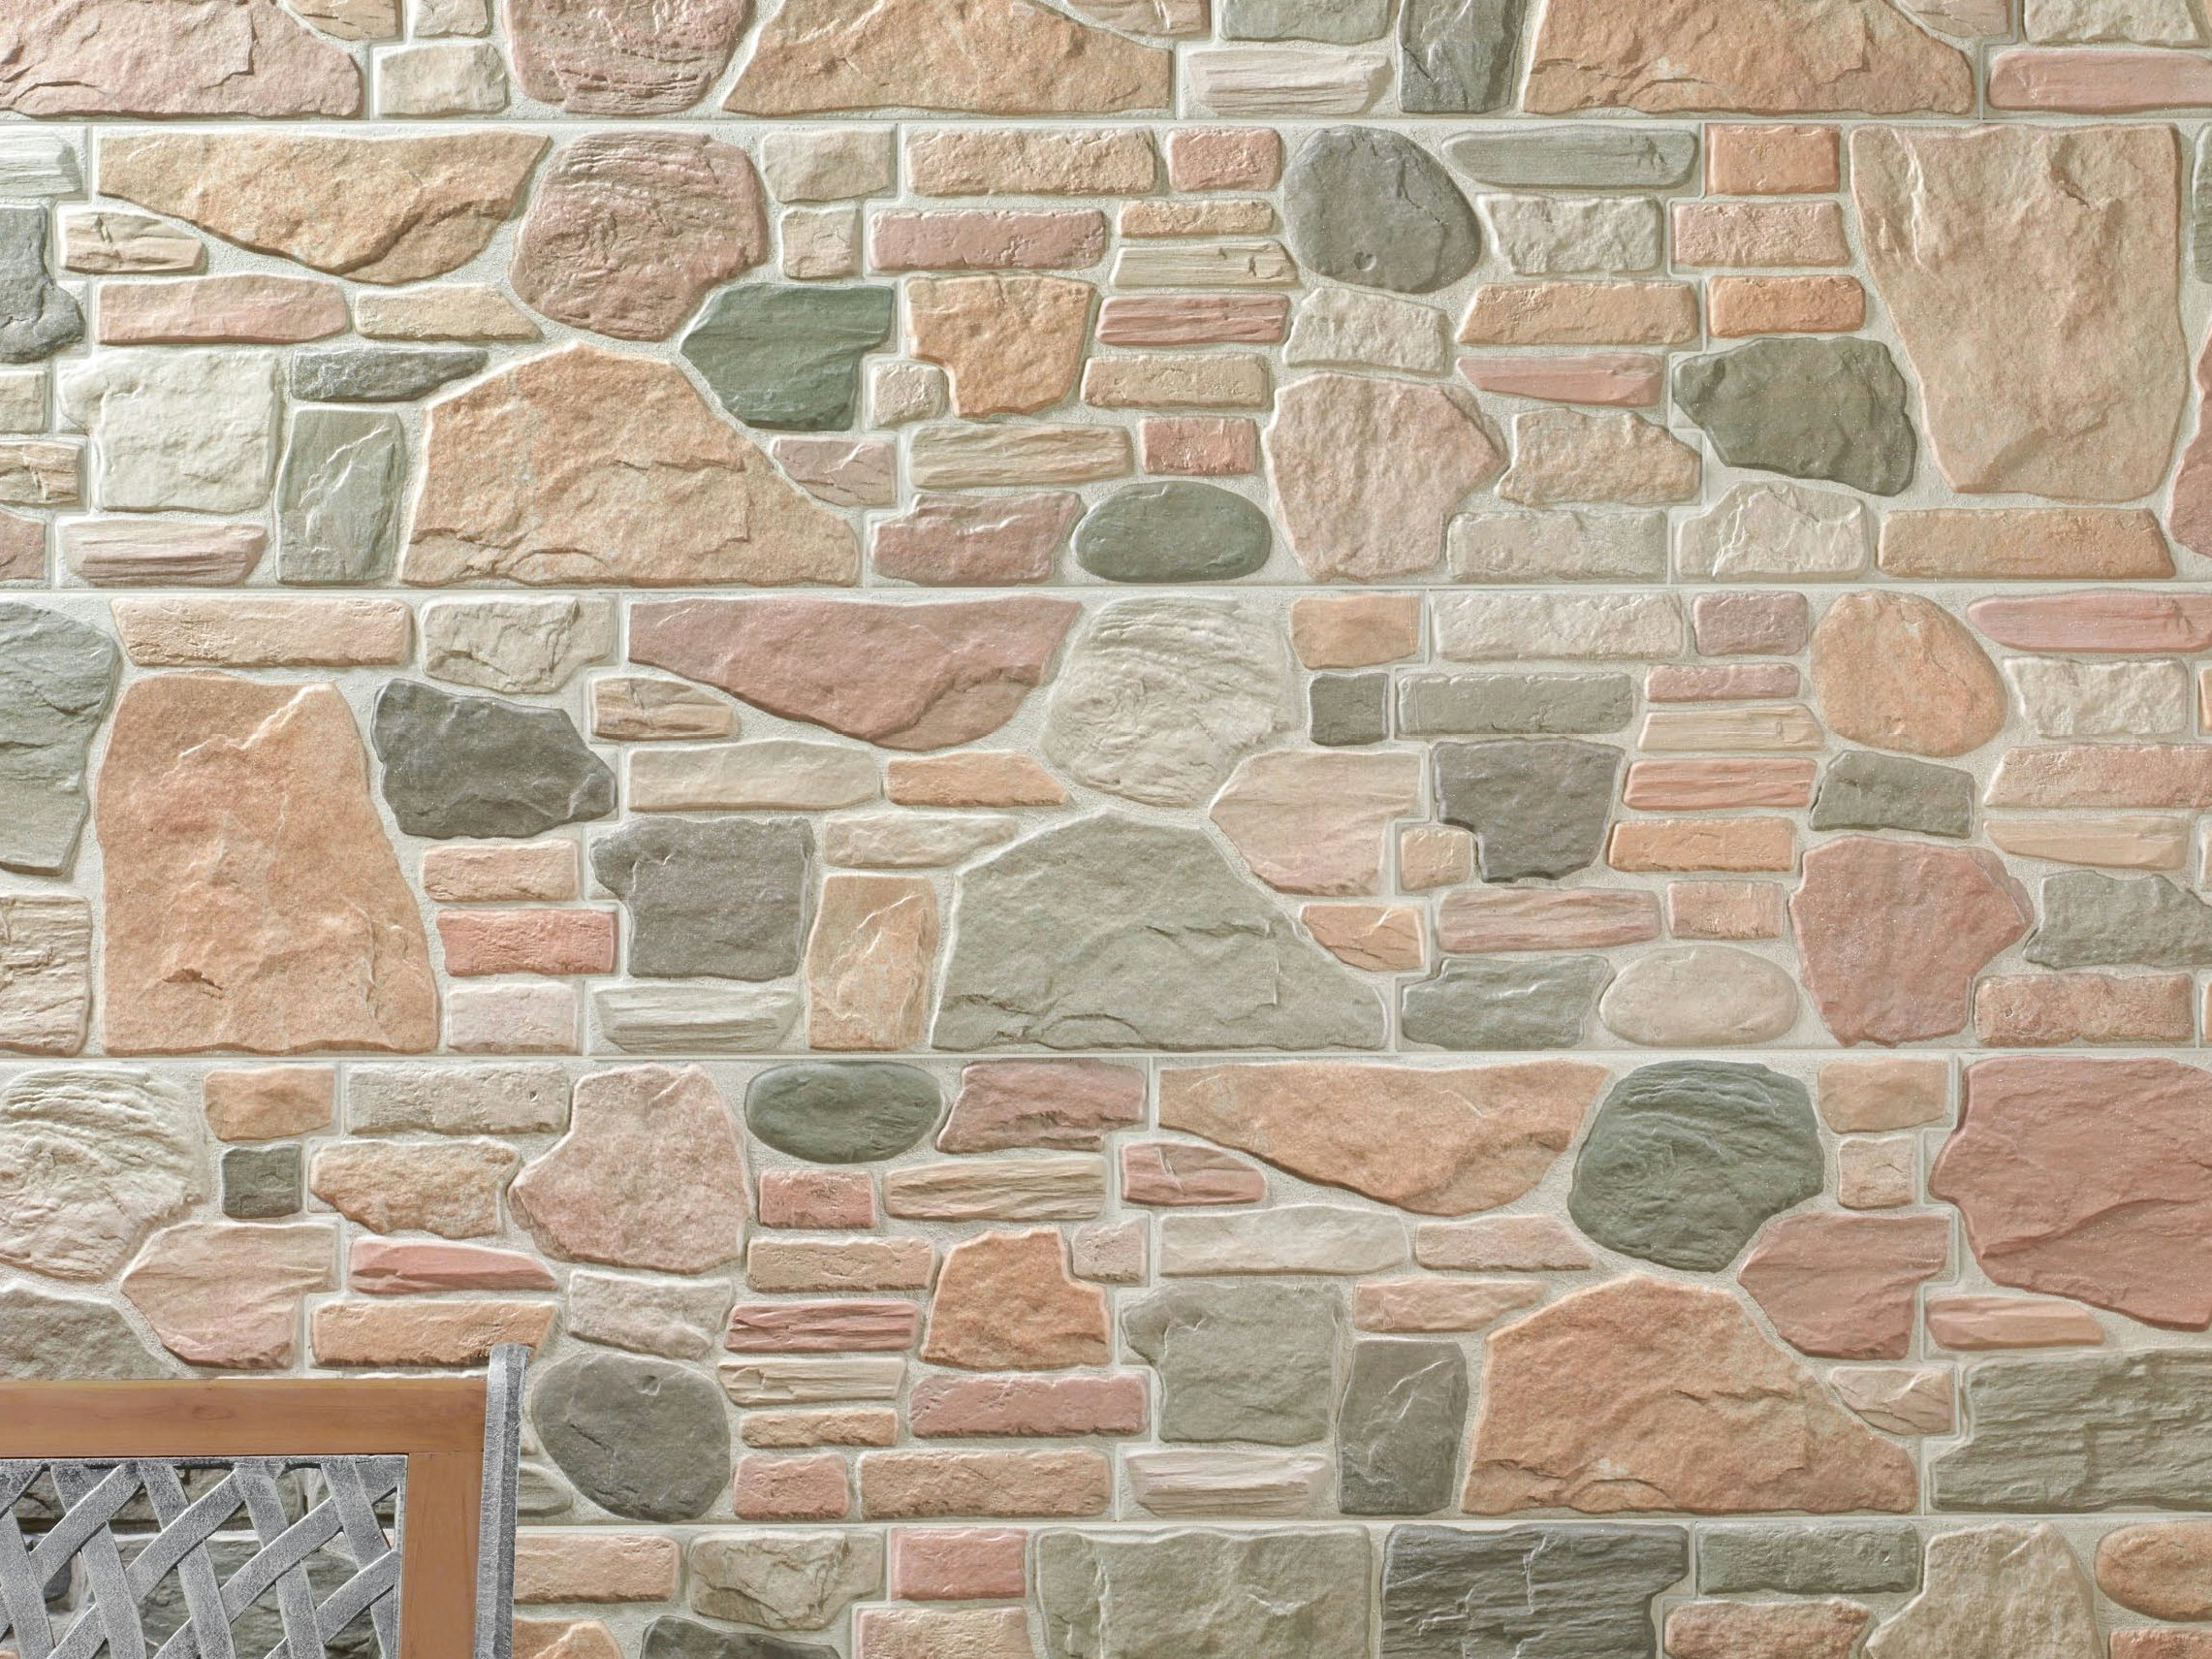 Stone Wall Tiles Design For Exterior : Outdoor porcelain stoneware wall tiles with stone effect